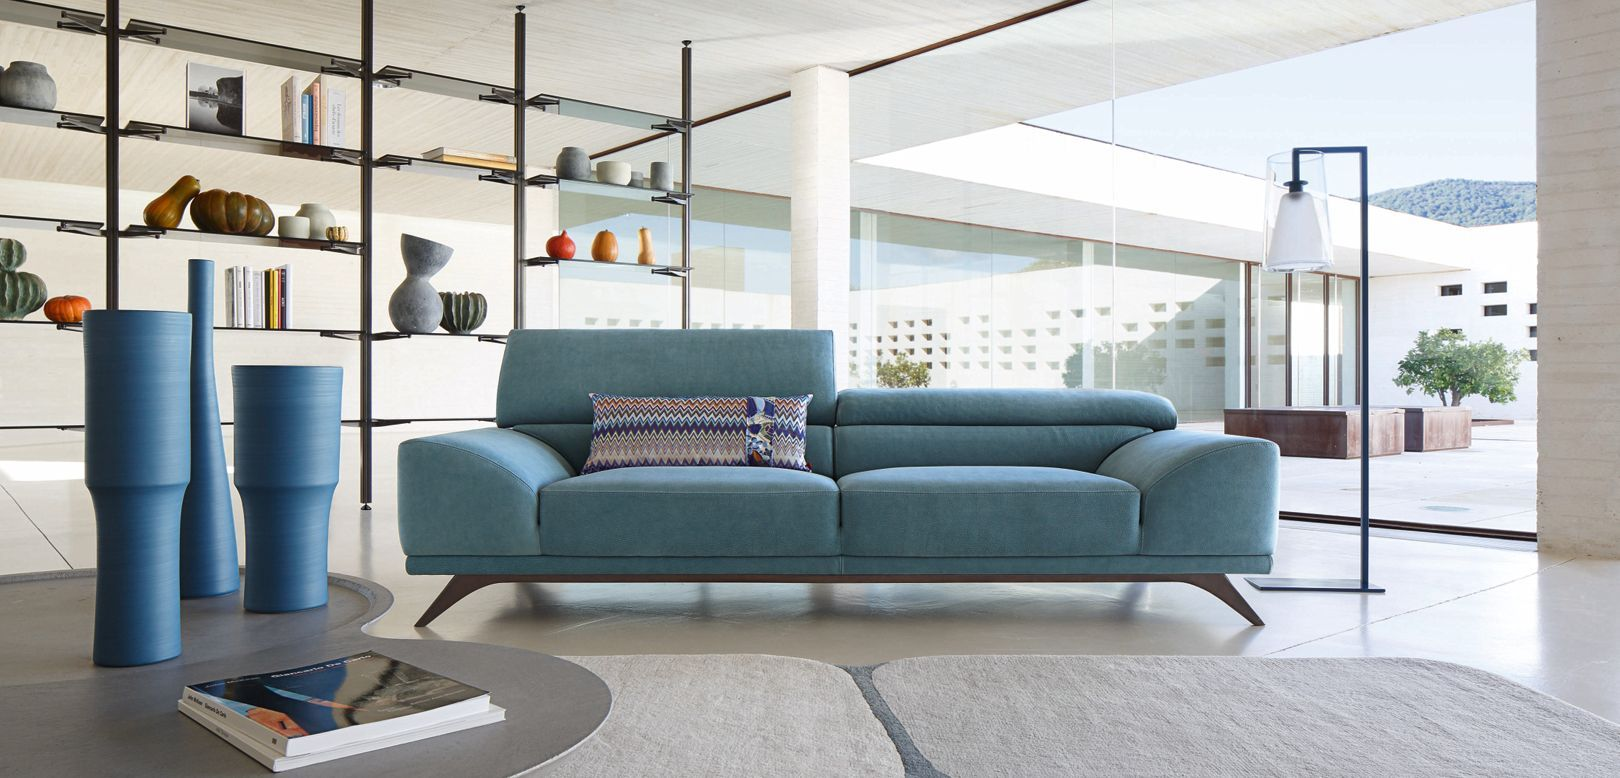 This sofa looks amazing roche bobois huge three seats for Coussin canape exterieur